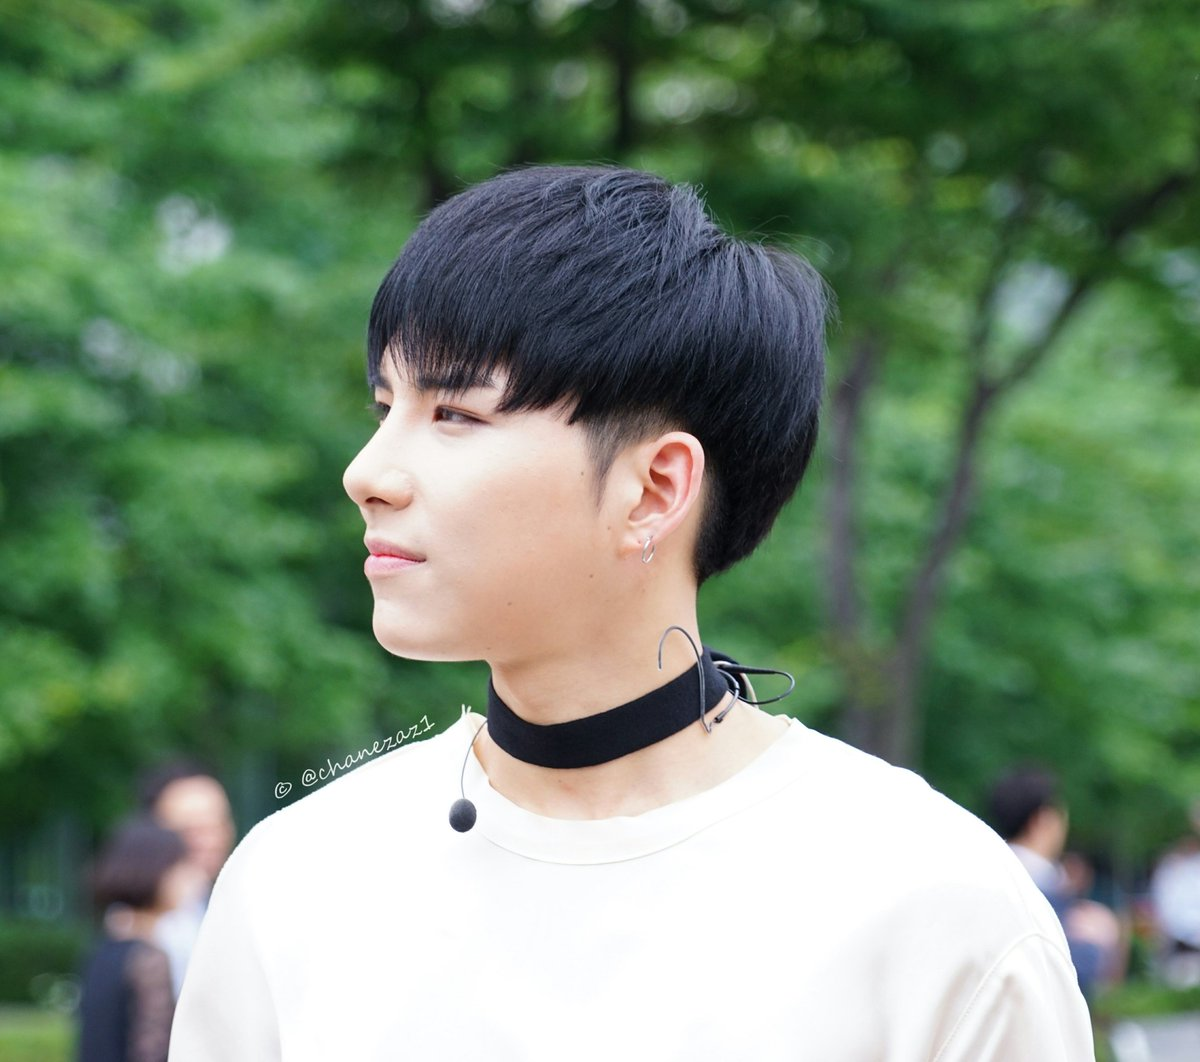 KIM SEYOON #WOW (I have so many pics lol, tbh my favourite model right now)170620  @official_ACE7 #ace #에이스 #선인장 #jun #chan #donghun #jason<br>http://pic.twitter.com/gtJubEFobL